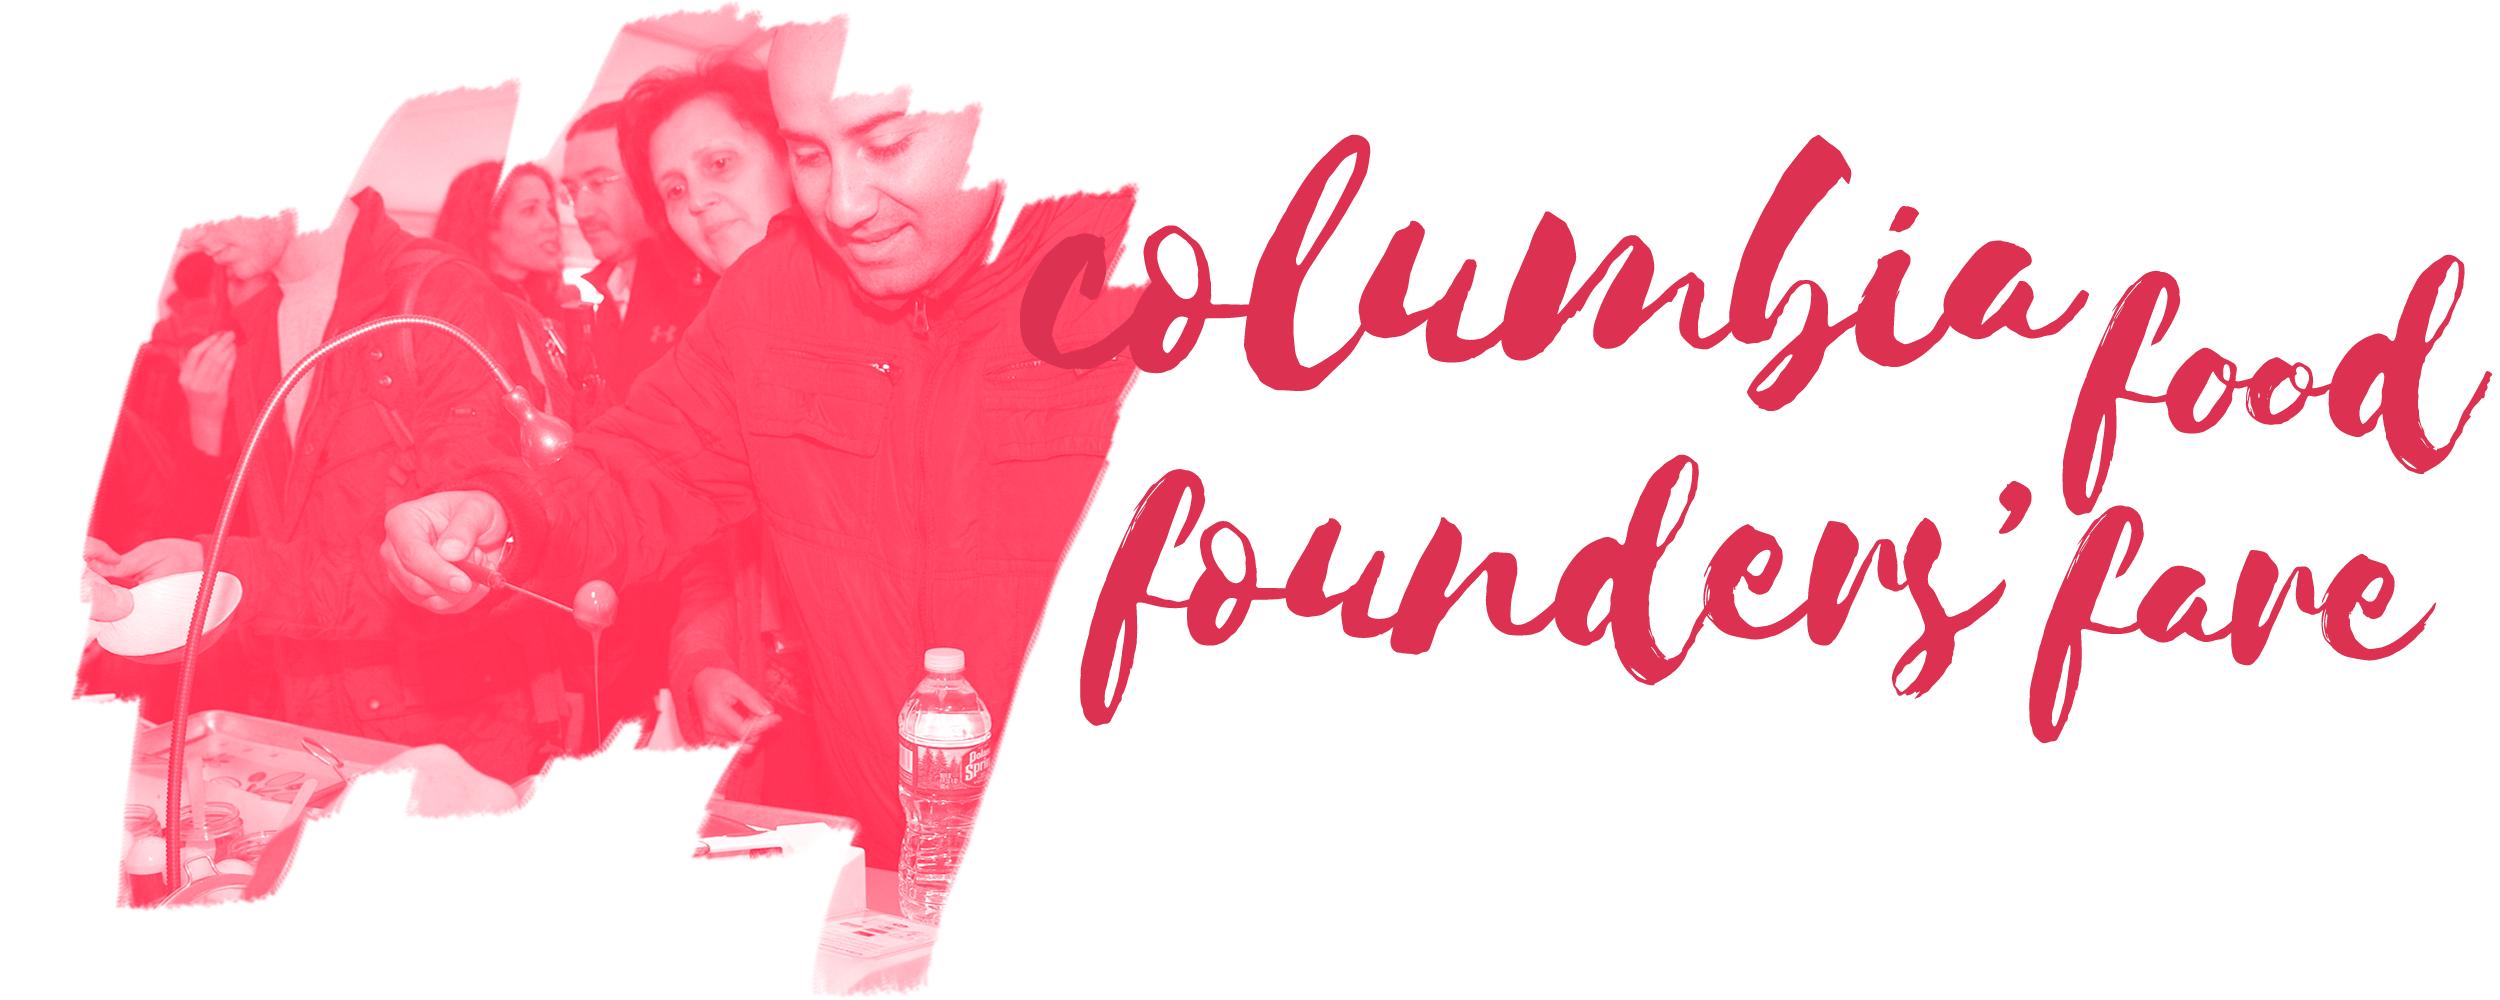 Columbia-Food-Founders'-Fare-banner-3.png